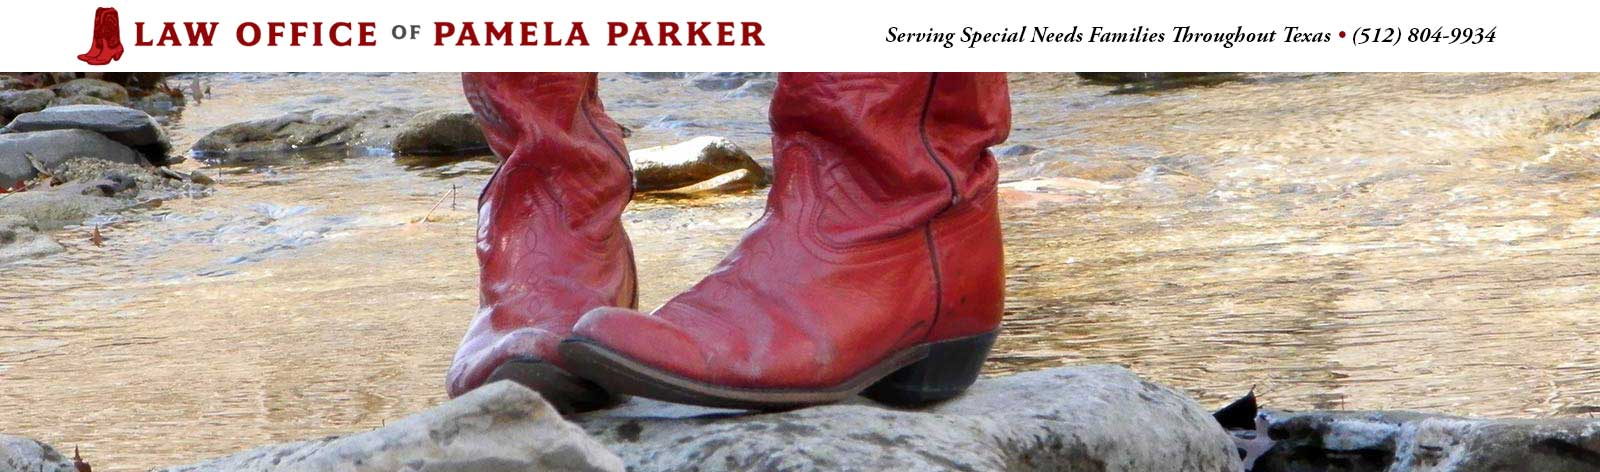 Law Office of Pamela Parker Serving Special Needs Families Throughout Texas (512) 804-9934